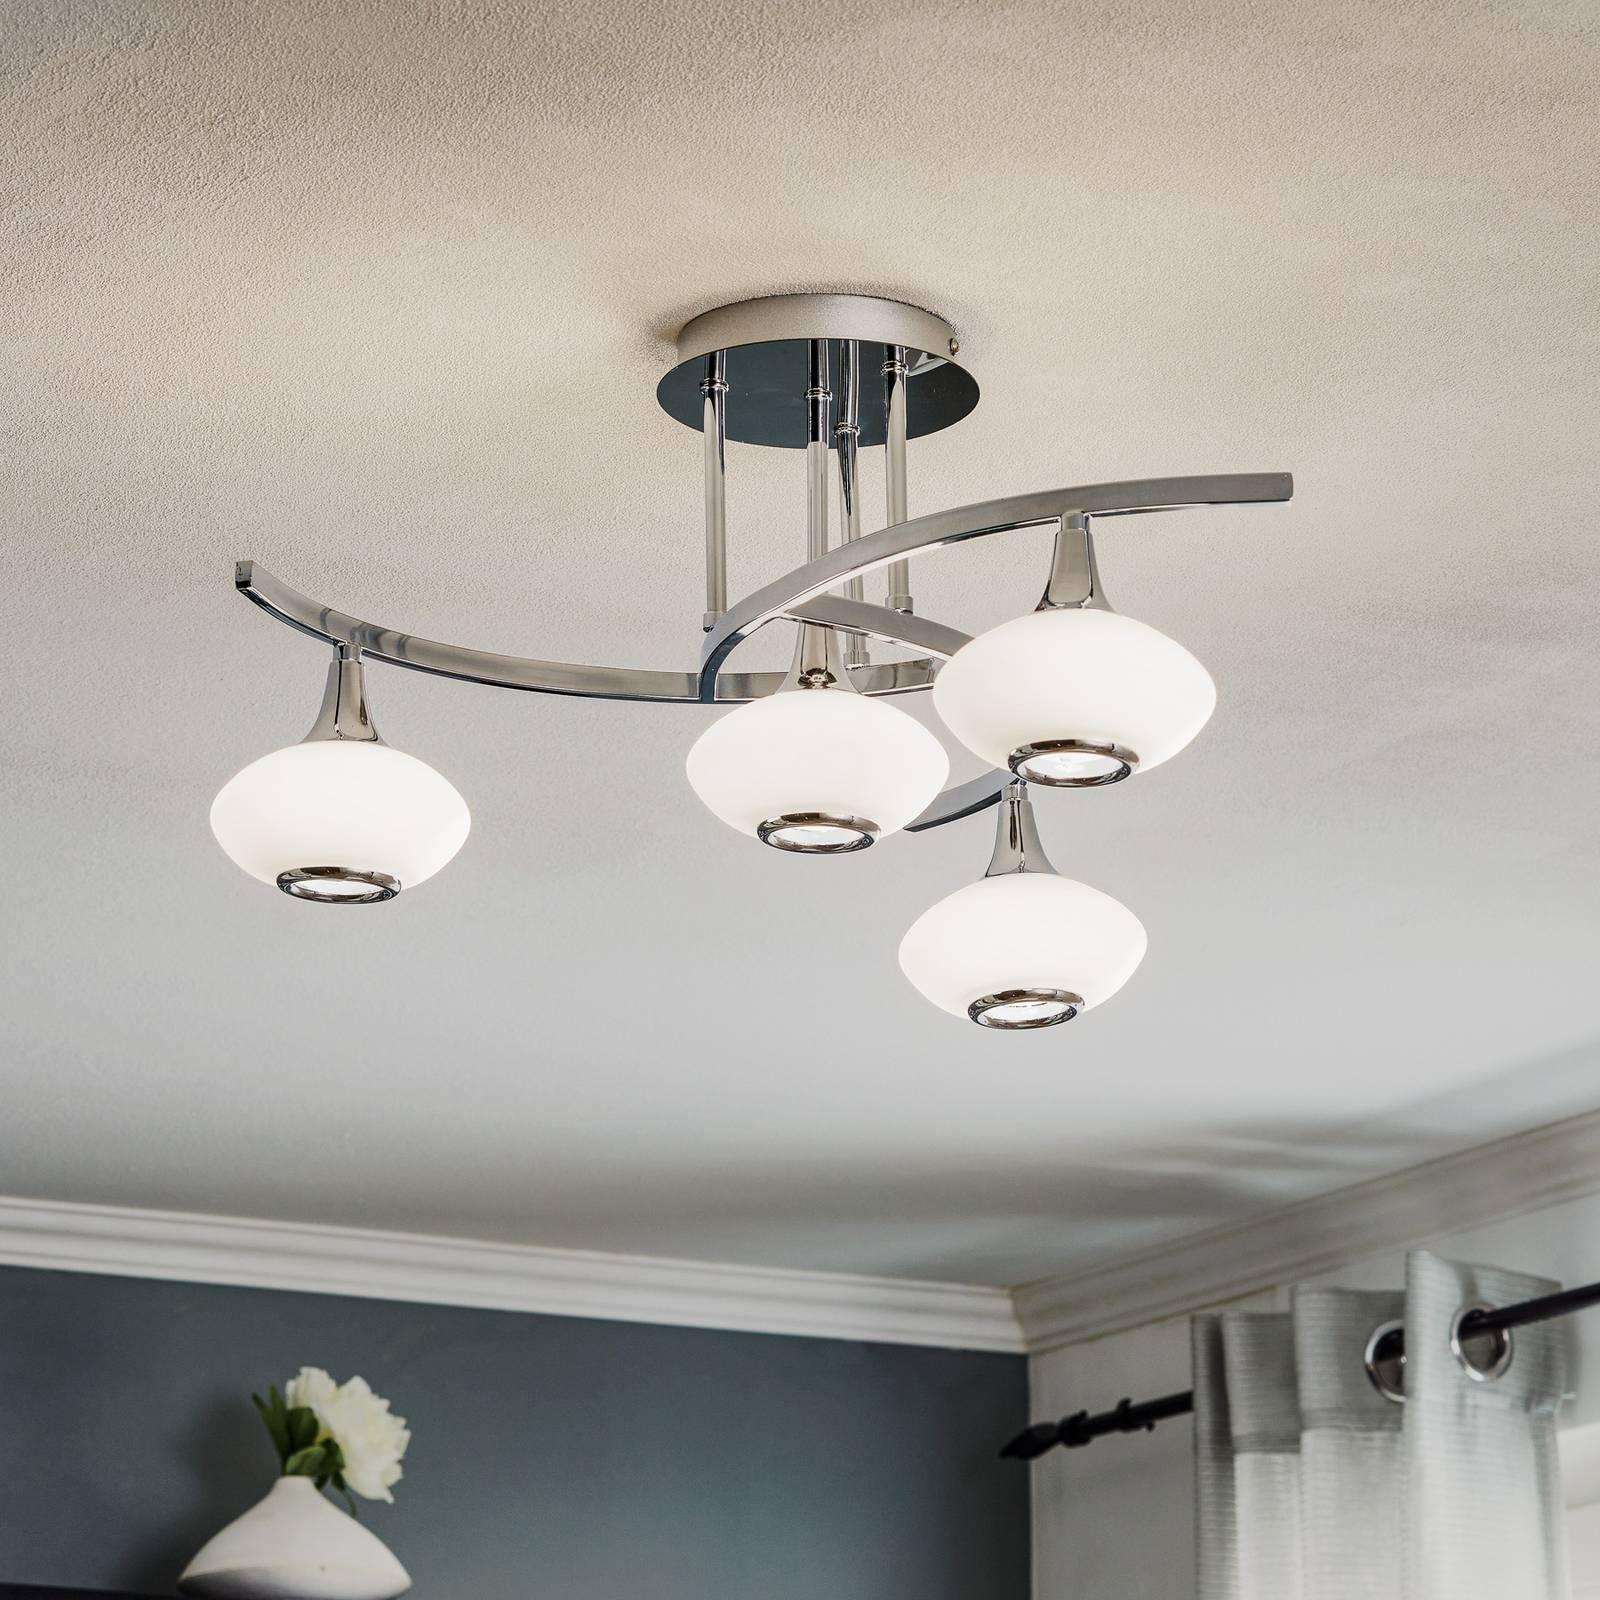 Lurana Ceiling Light Interesting Four Bulbs from Orion